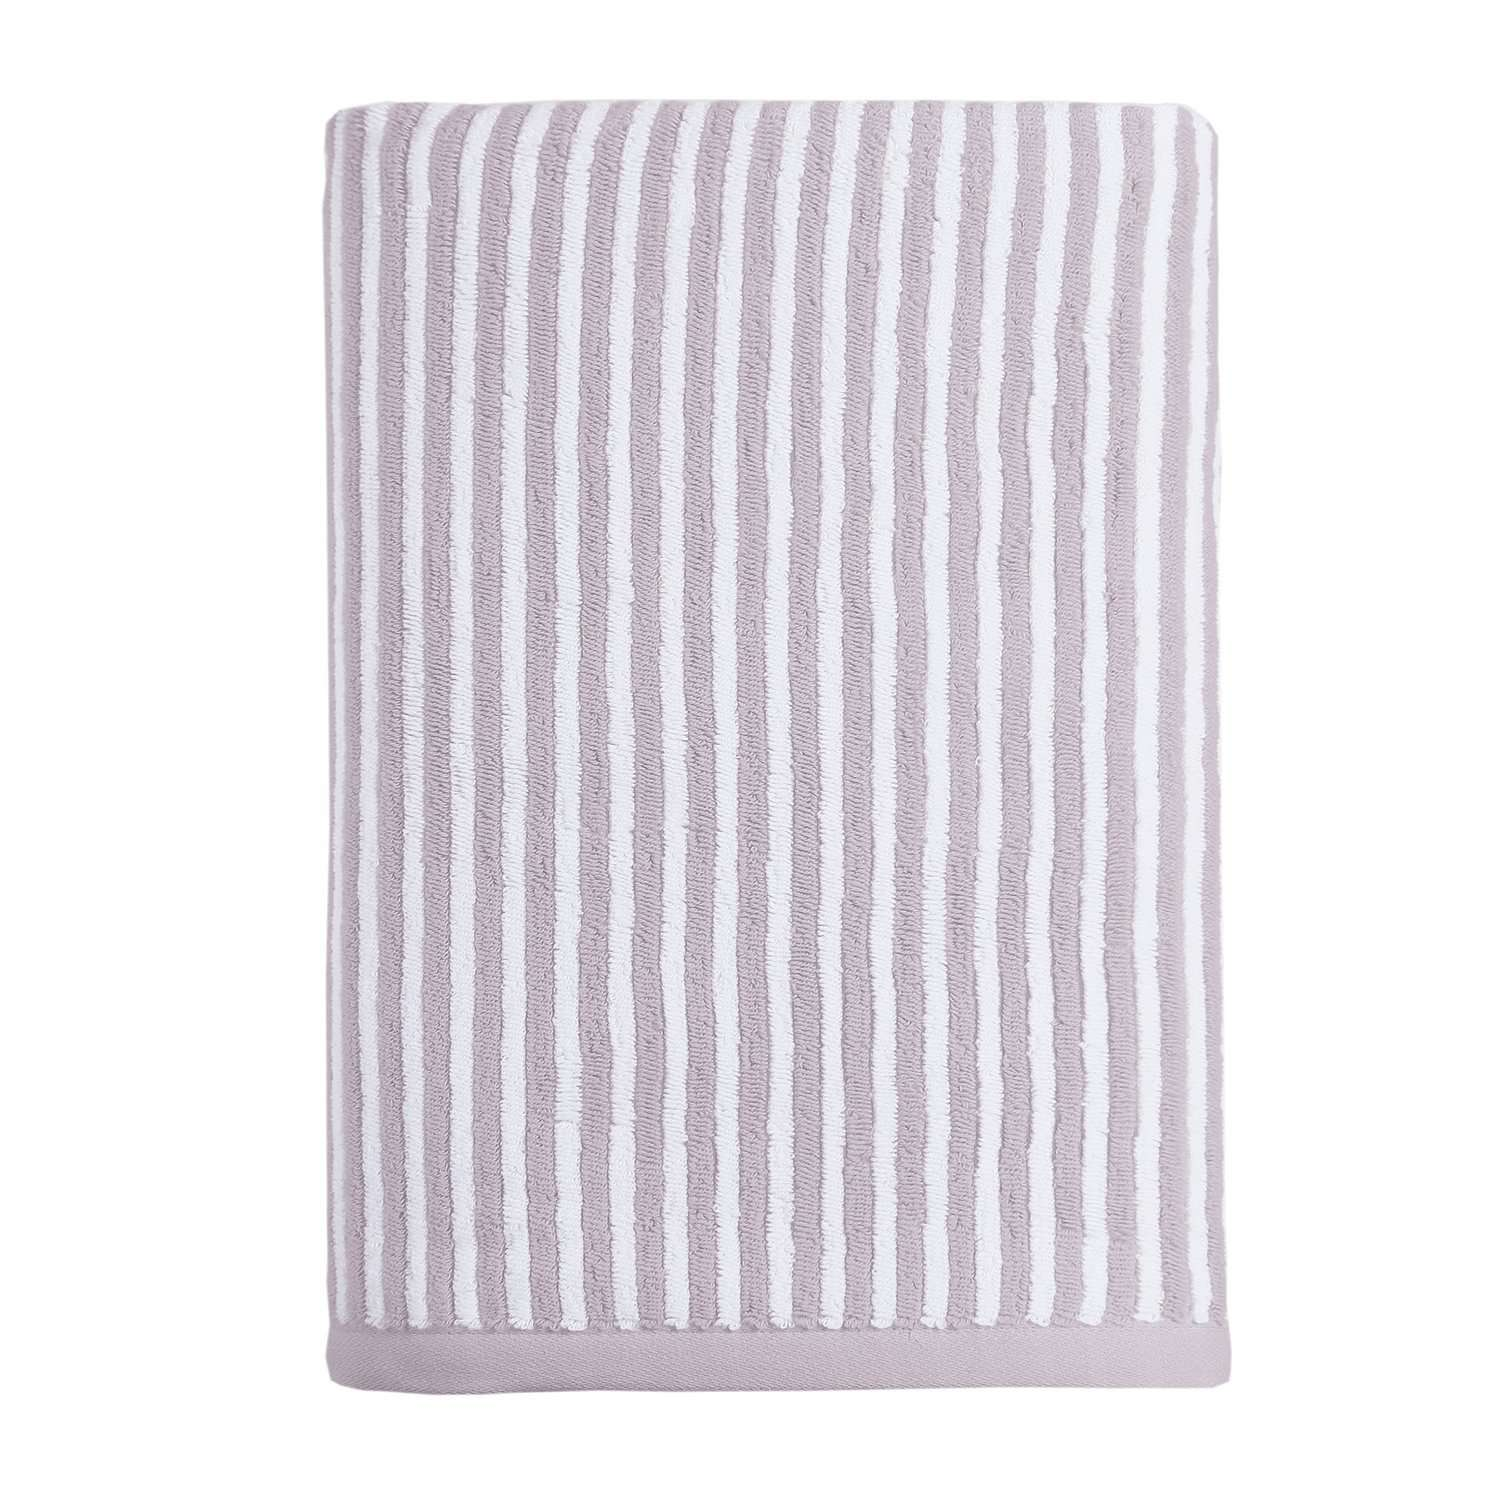 Loredana 100% Turkish Cotton Luxury Towels - Luxor Linens